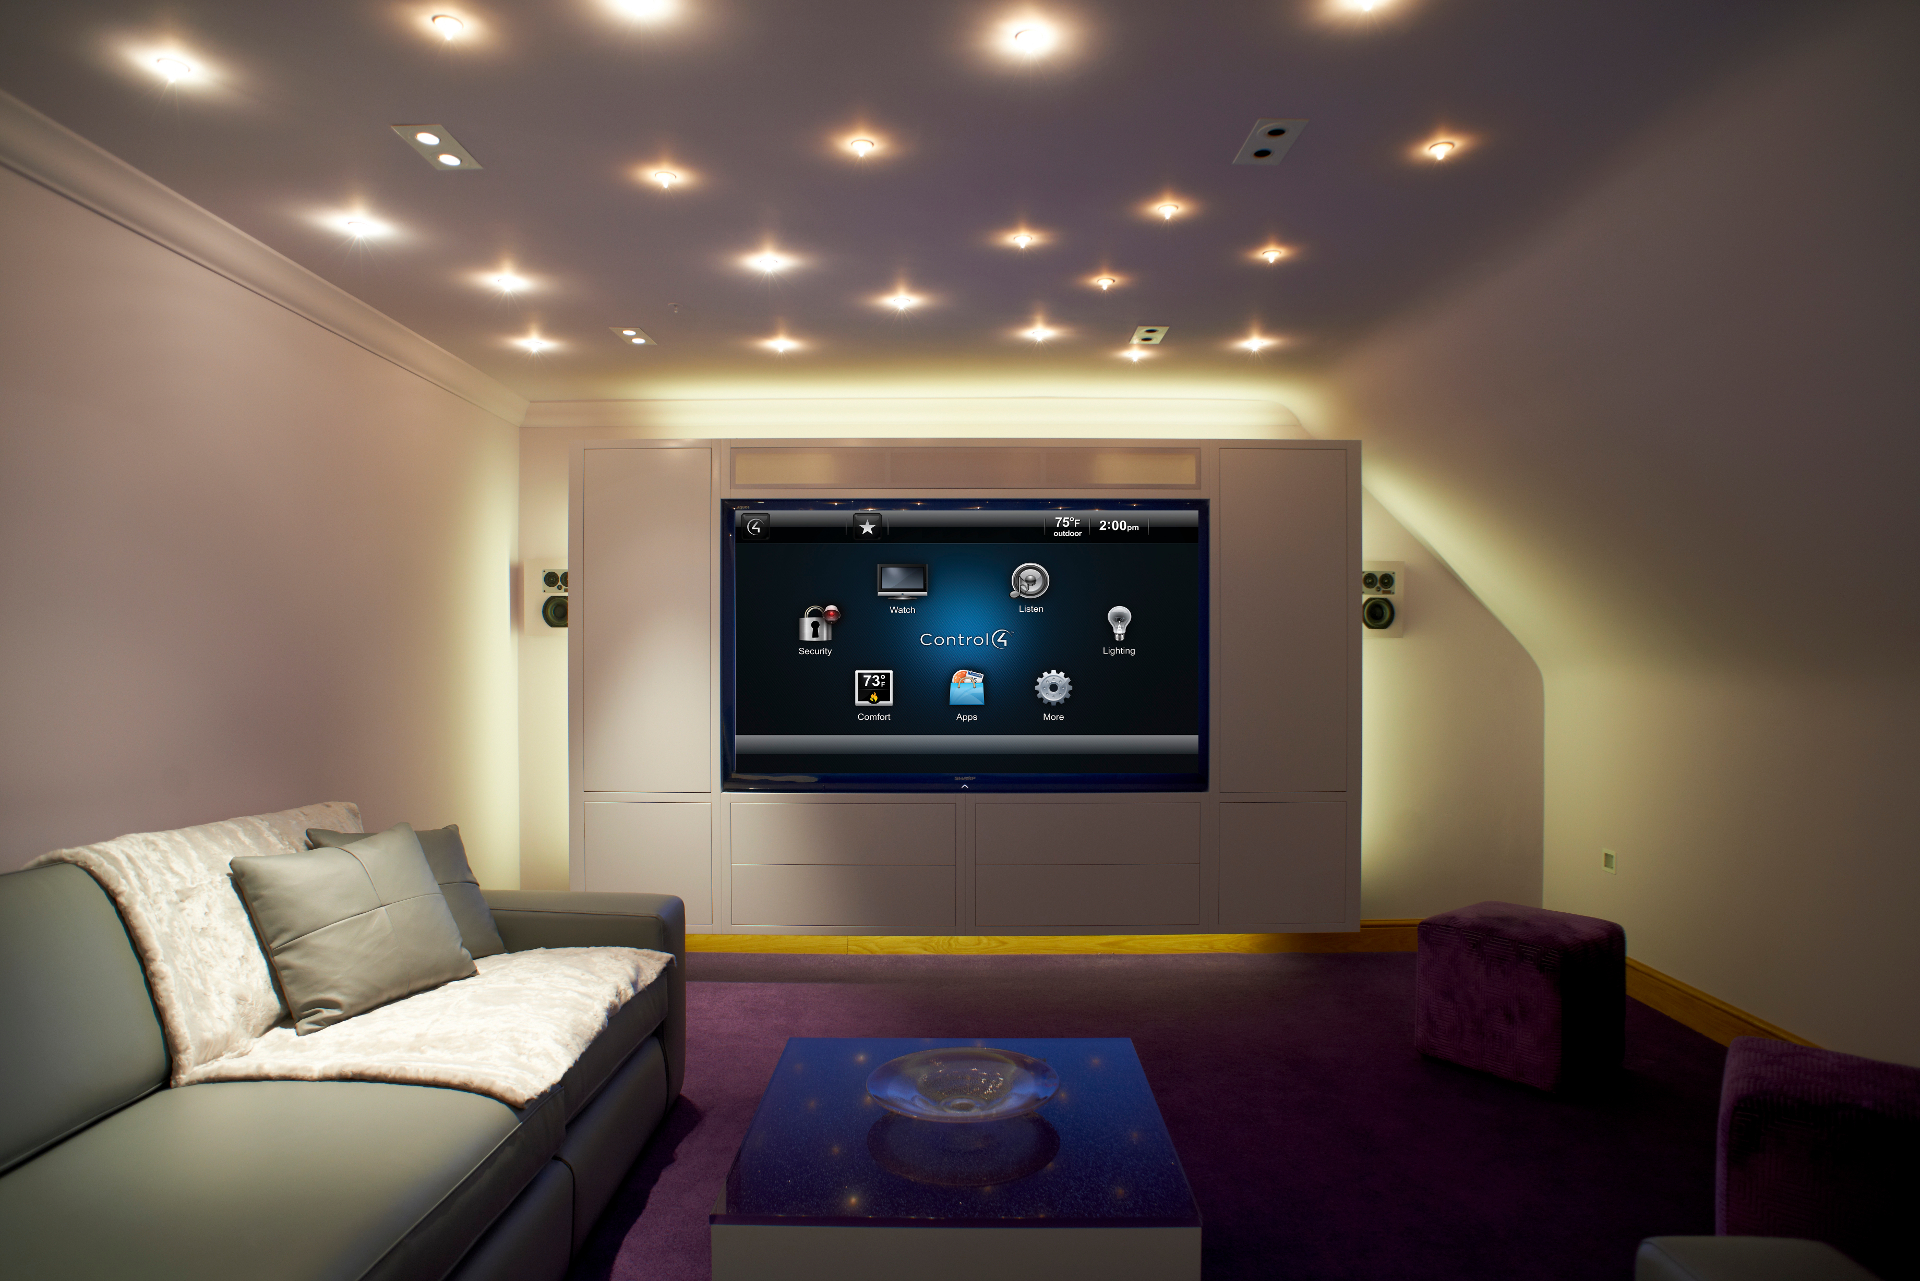 house lighting design. AZ Sound Pro Can Handle Many Levels Of Lighting Design From Commercial And Residential Panelized Solutions As Well Retrofit Options House 0